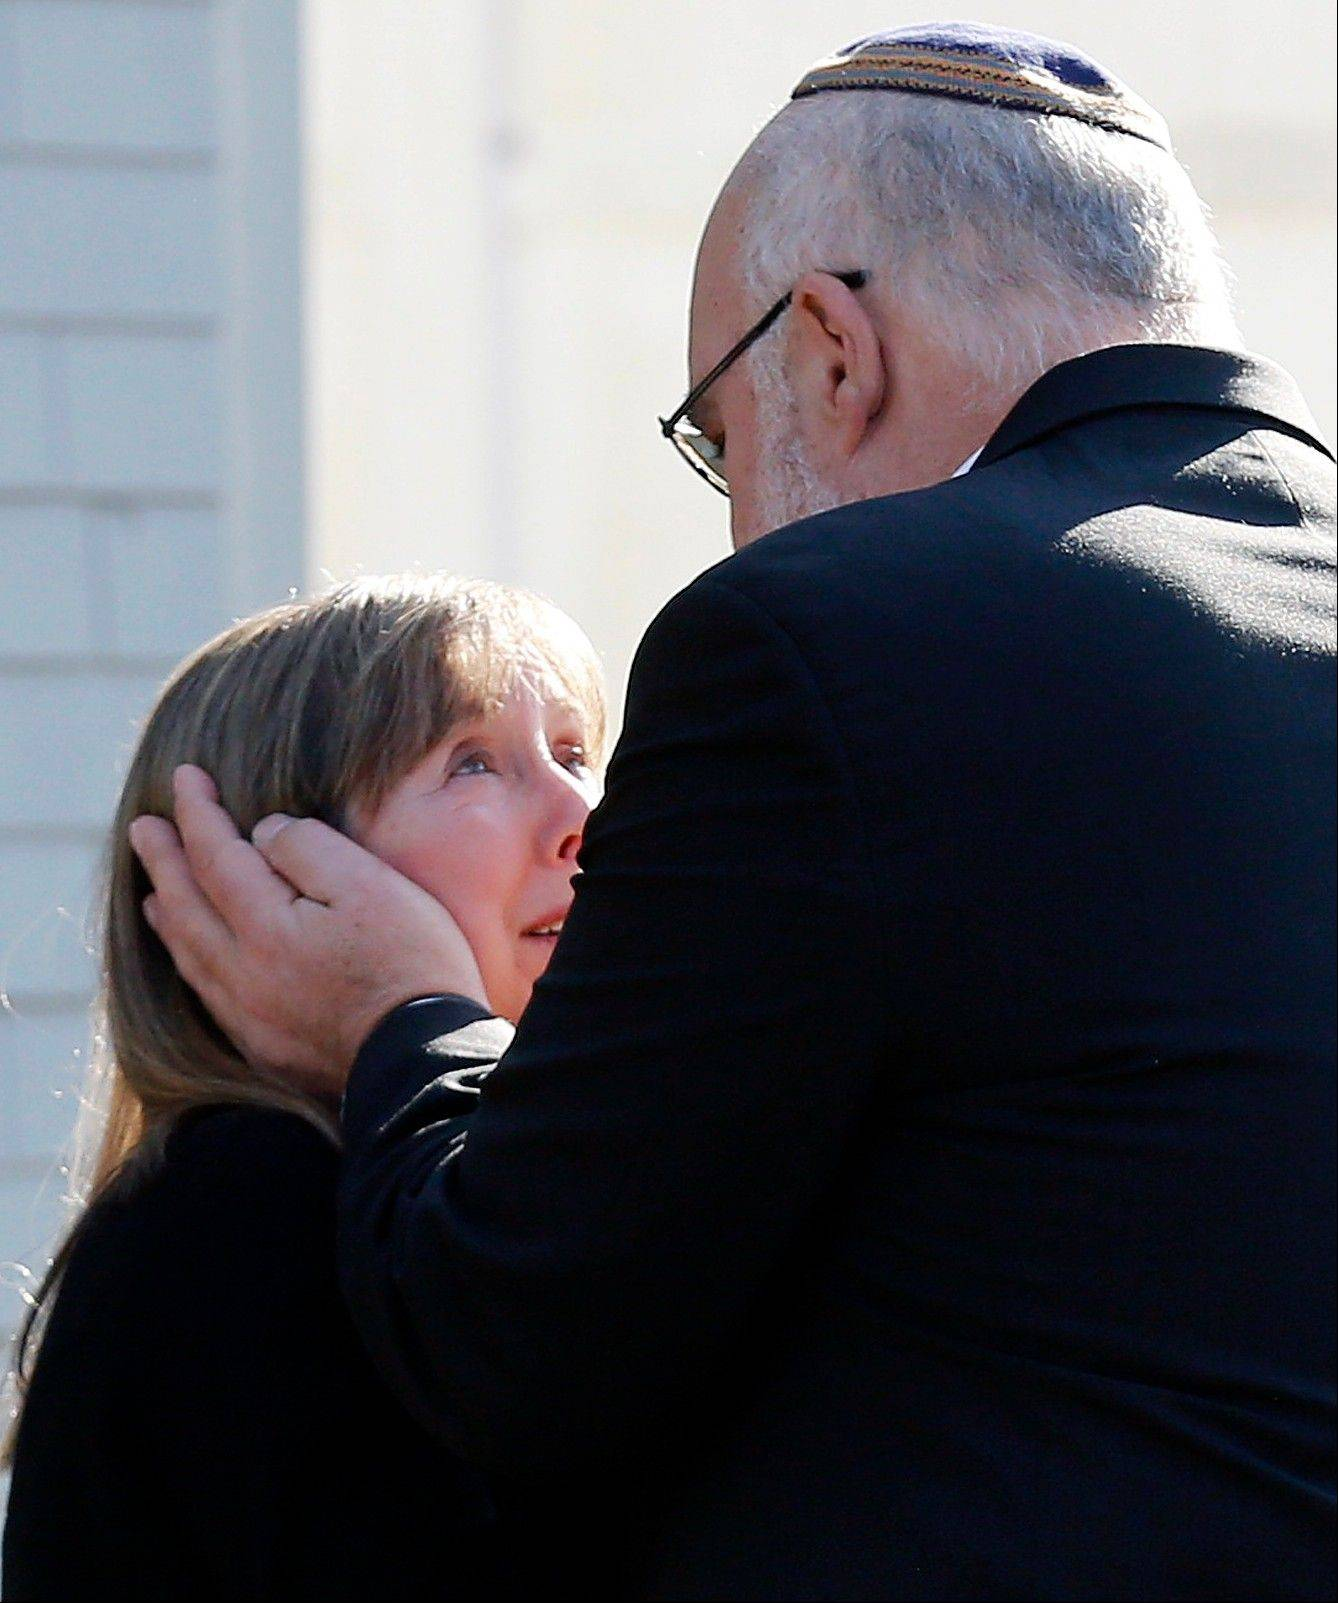 Two people embrace following a service at the Congregation Adath Israel in Newtown, Conn., Saturday. Rabbi Shaul Praver said a six-year-old boy from the congregation was a school shooting victim and that he would be buried on Sunday.